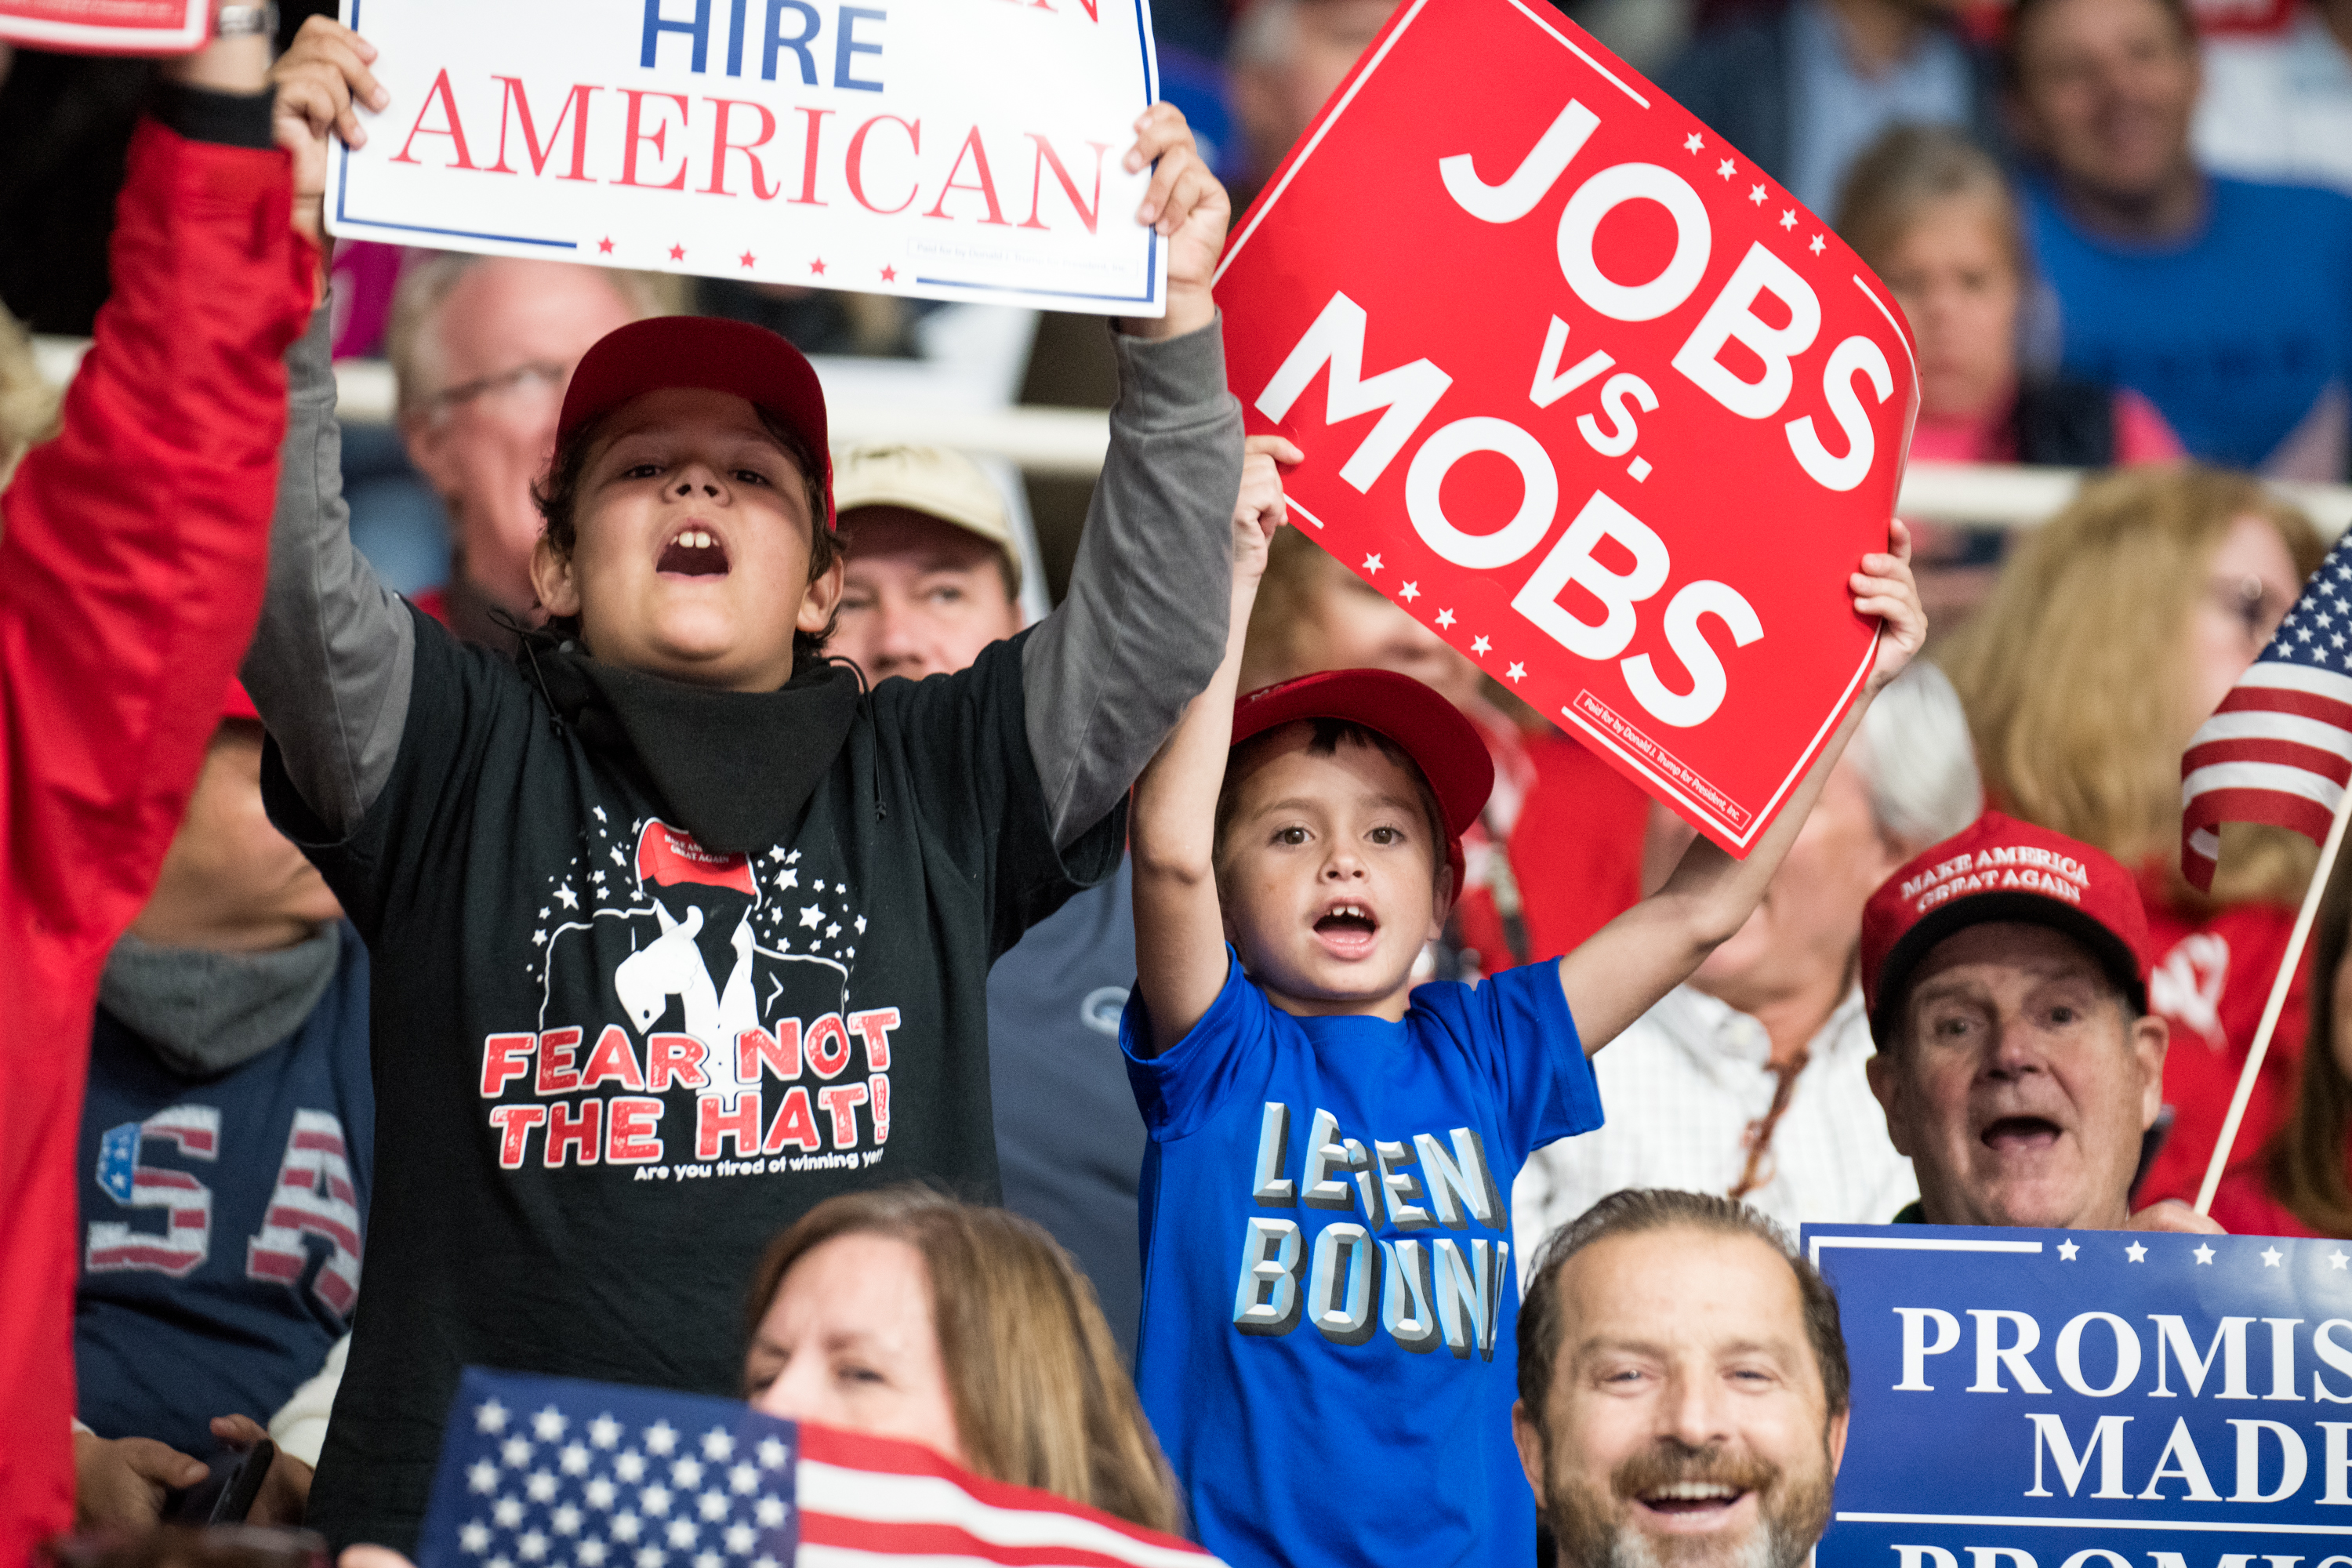 Supporters of President Donald Trump cheer while waiting for the president's arrival before a campaign rally at the Bojangles Coliseum on October 26, 2018 in Charlotte, North Carolina. President Trump visited Charlotte to campaign for 9th District House candidate Mark Harris. (Photo by Sean Rayford/Getty Images)